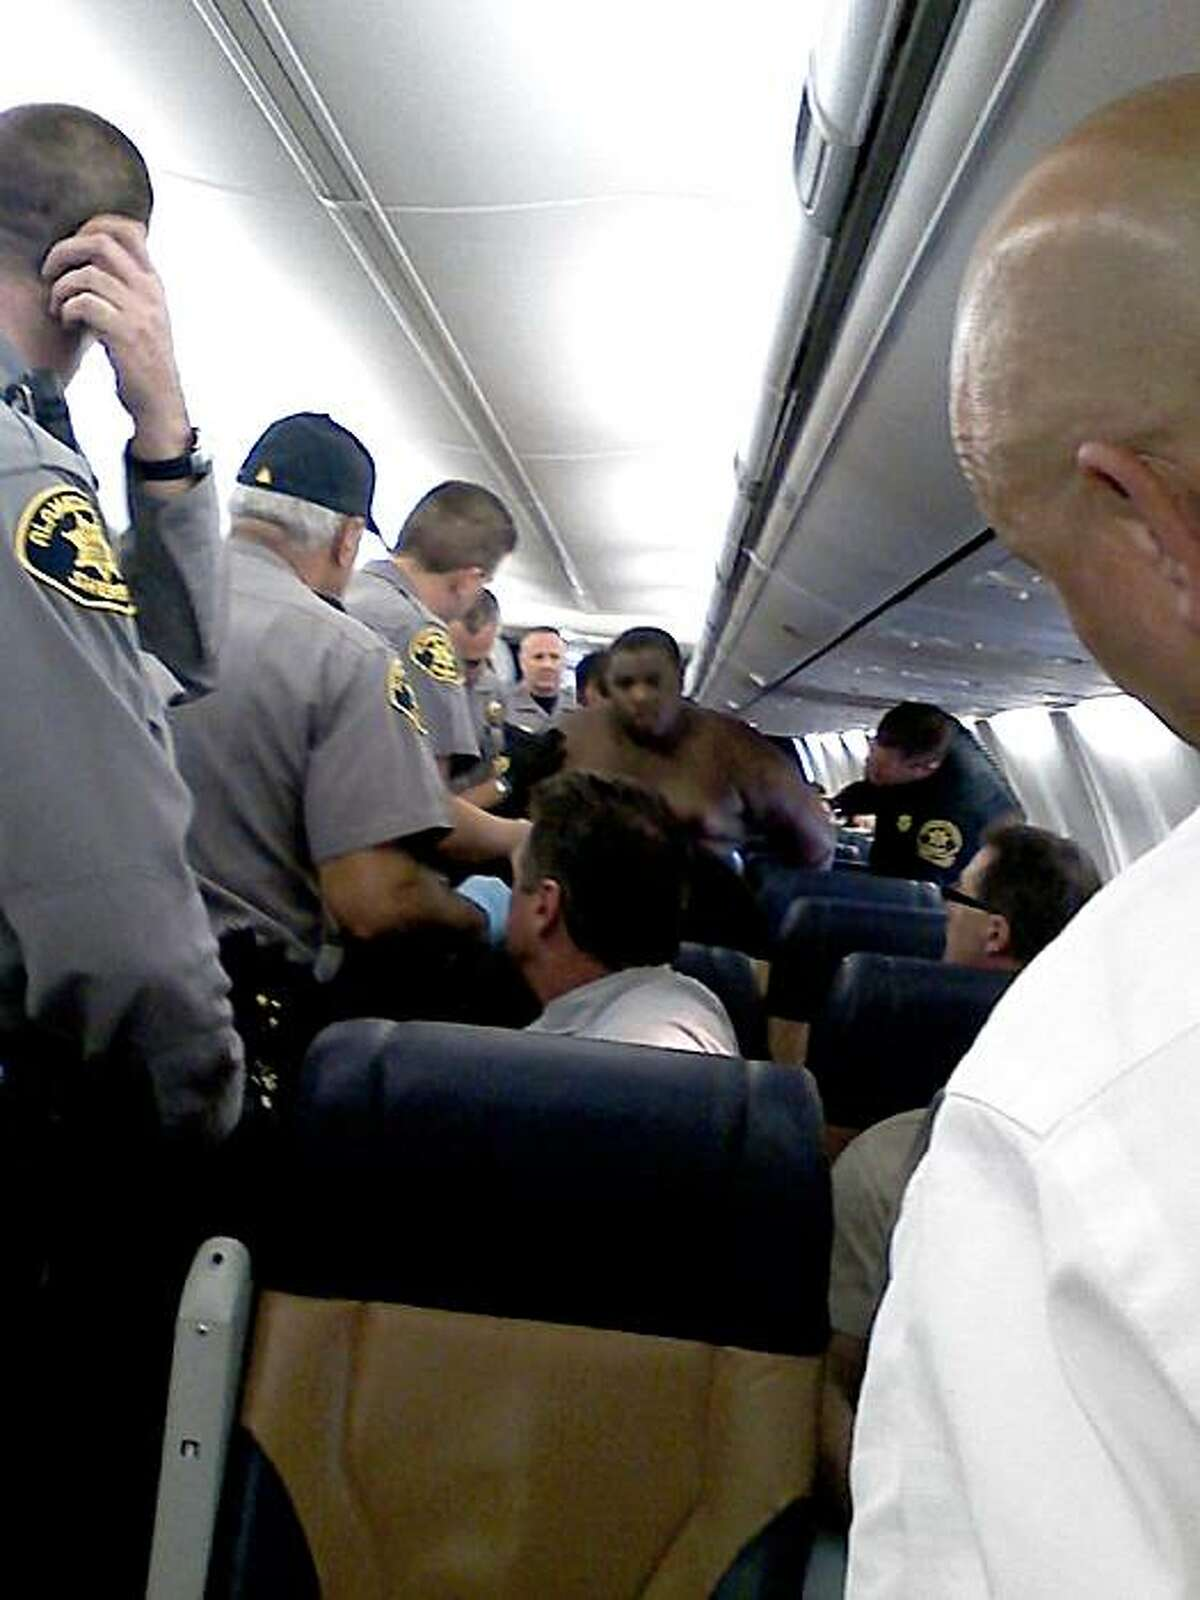 This picture shot by a passenger aboard Southwest Airlines Flight 947 shows Alameda County Sheriff's deputies arresting a man who allegedly exposed himself to his female seat-mate, punched her when she screamed, and then stripped off all of his clothes as flight attendants and other passengers tried to subdue him.